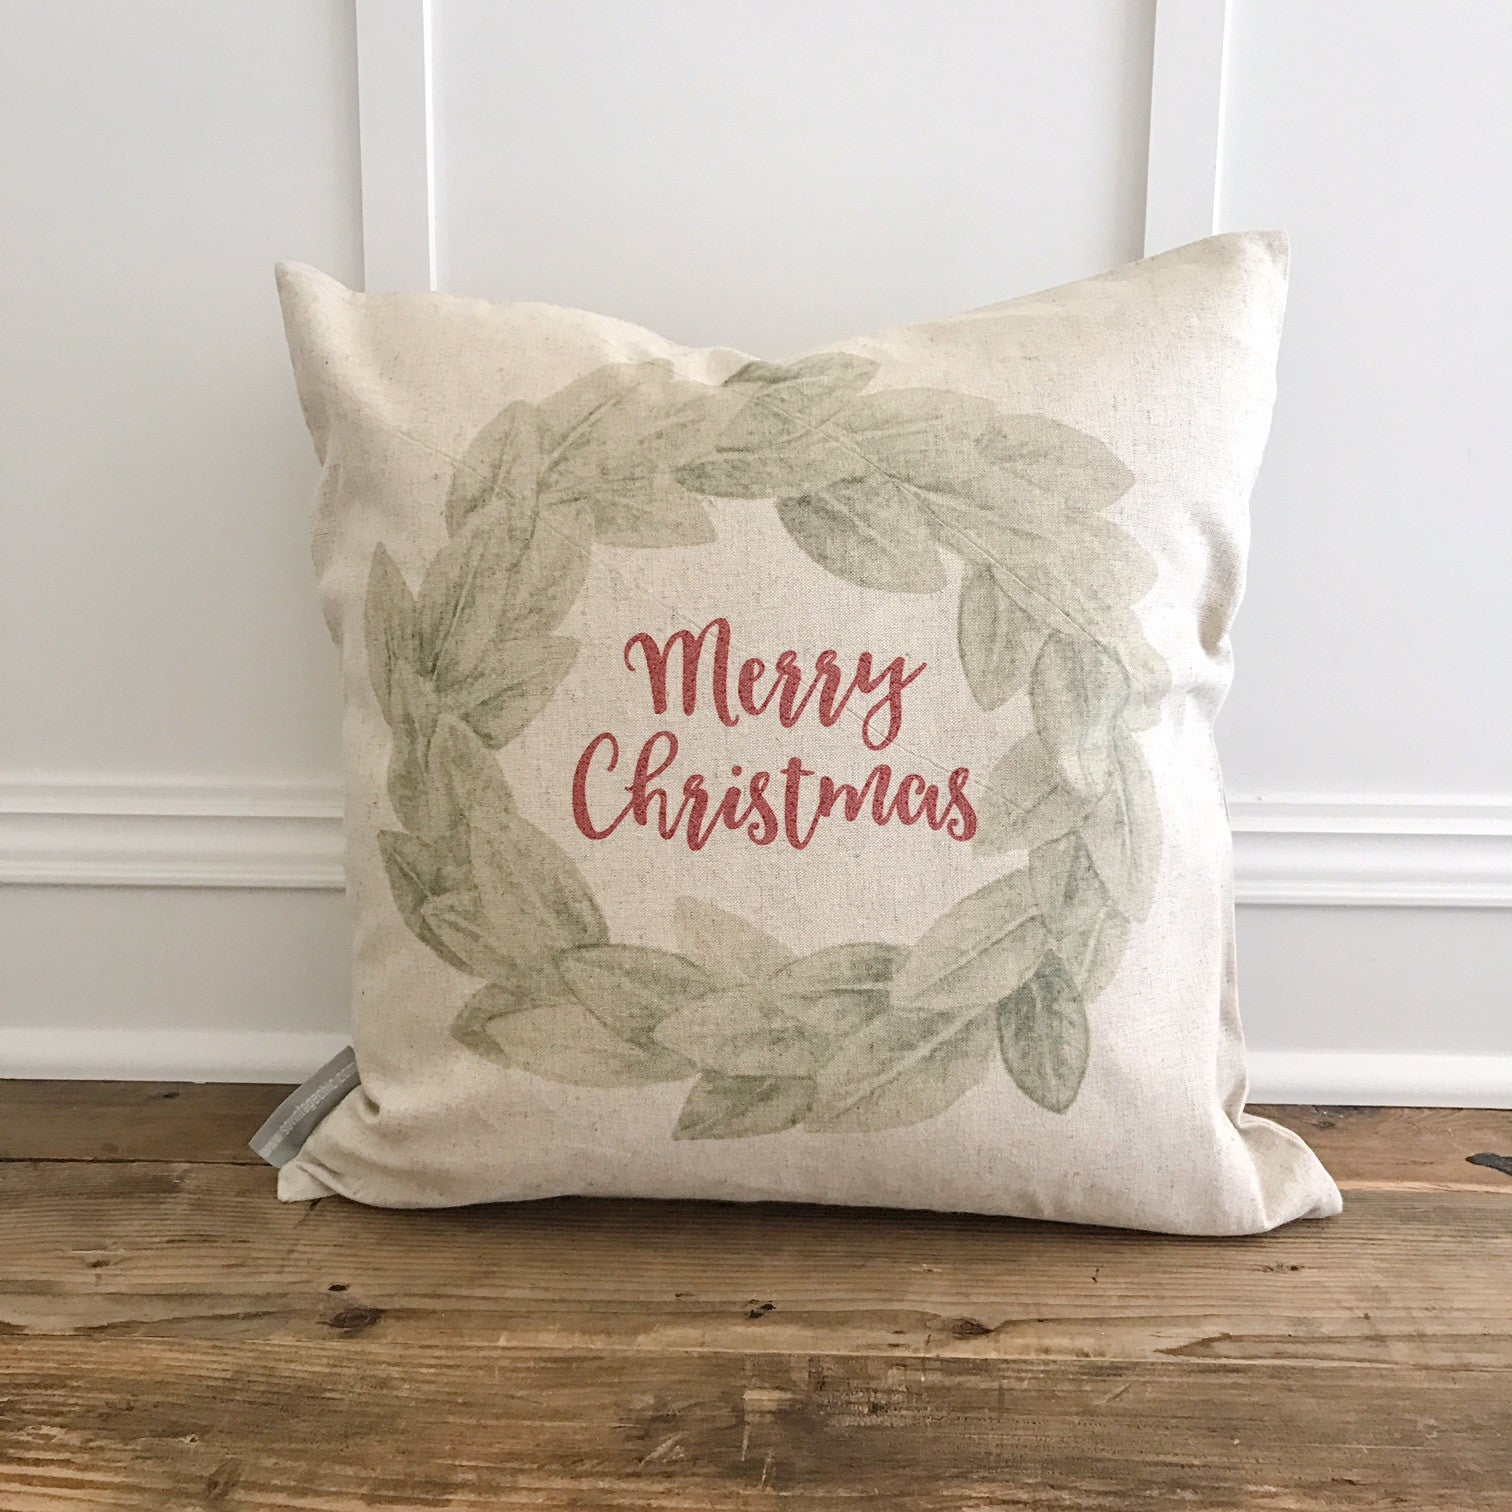 Merry Christmas Magnolia Wreath Pillow Cover - Linen and Ivory